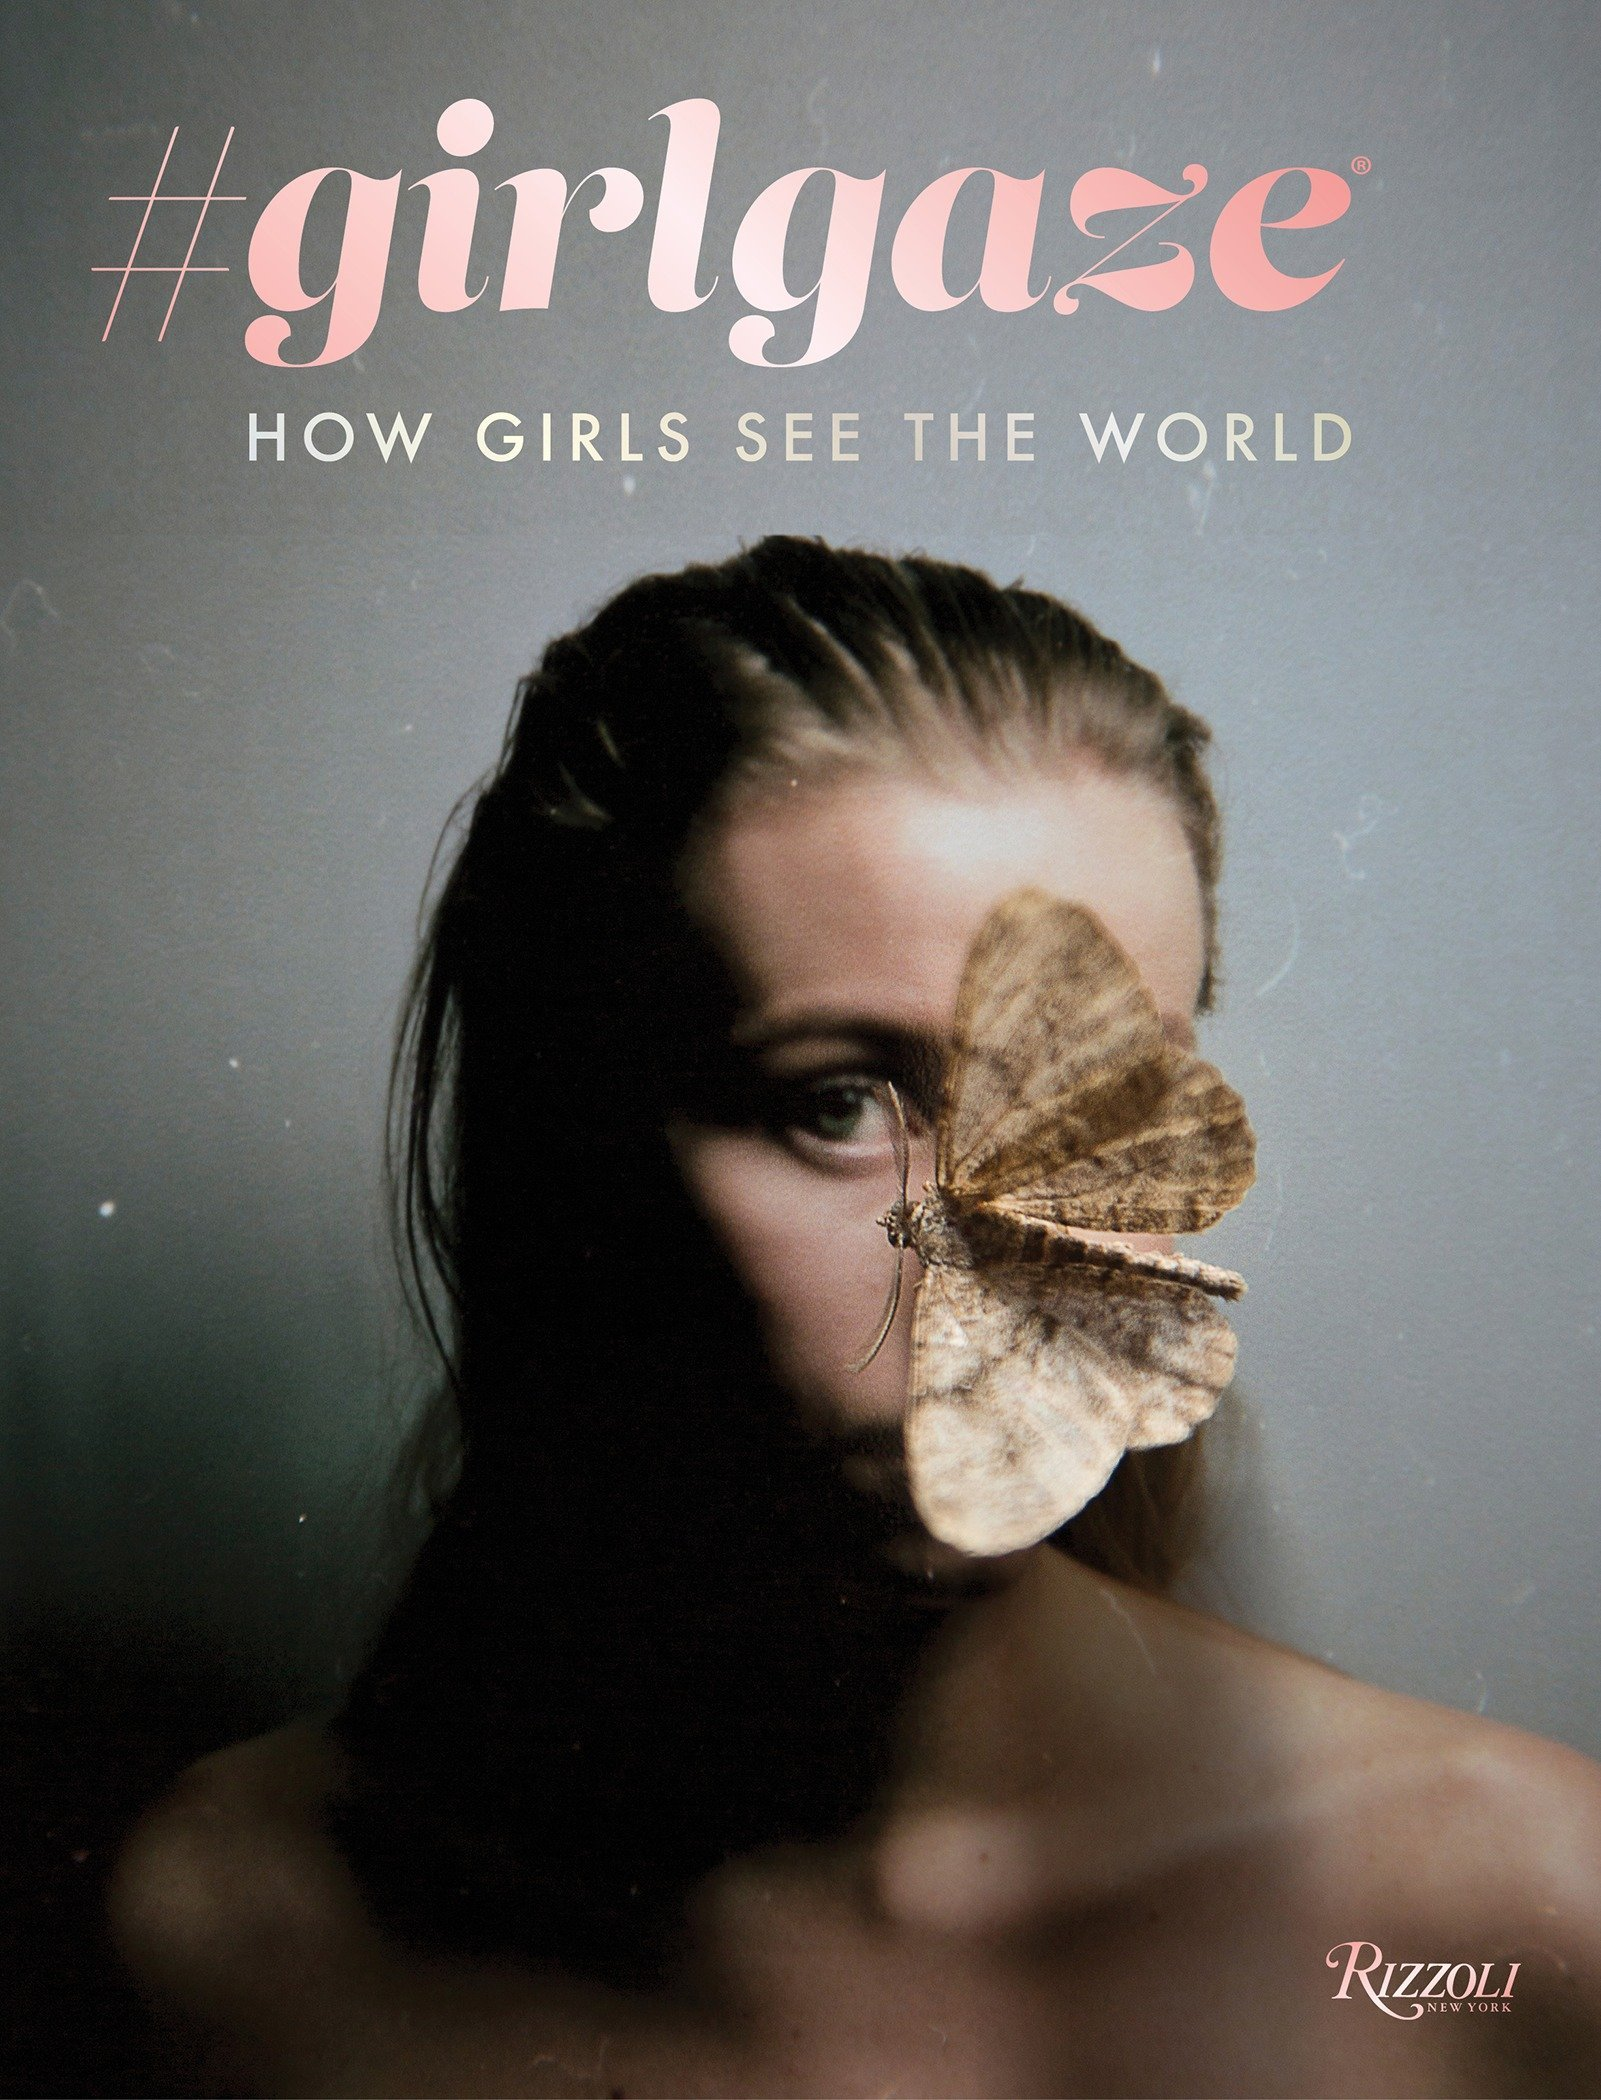 #girlgaze: How Girls See the World by RIZZOLI